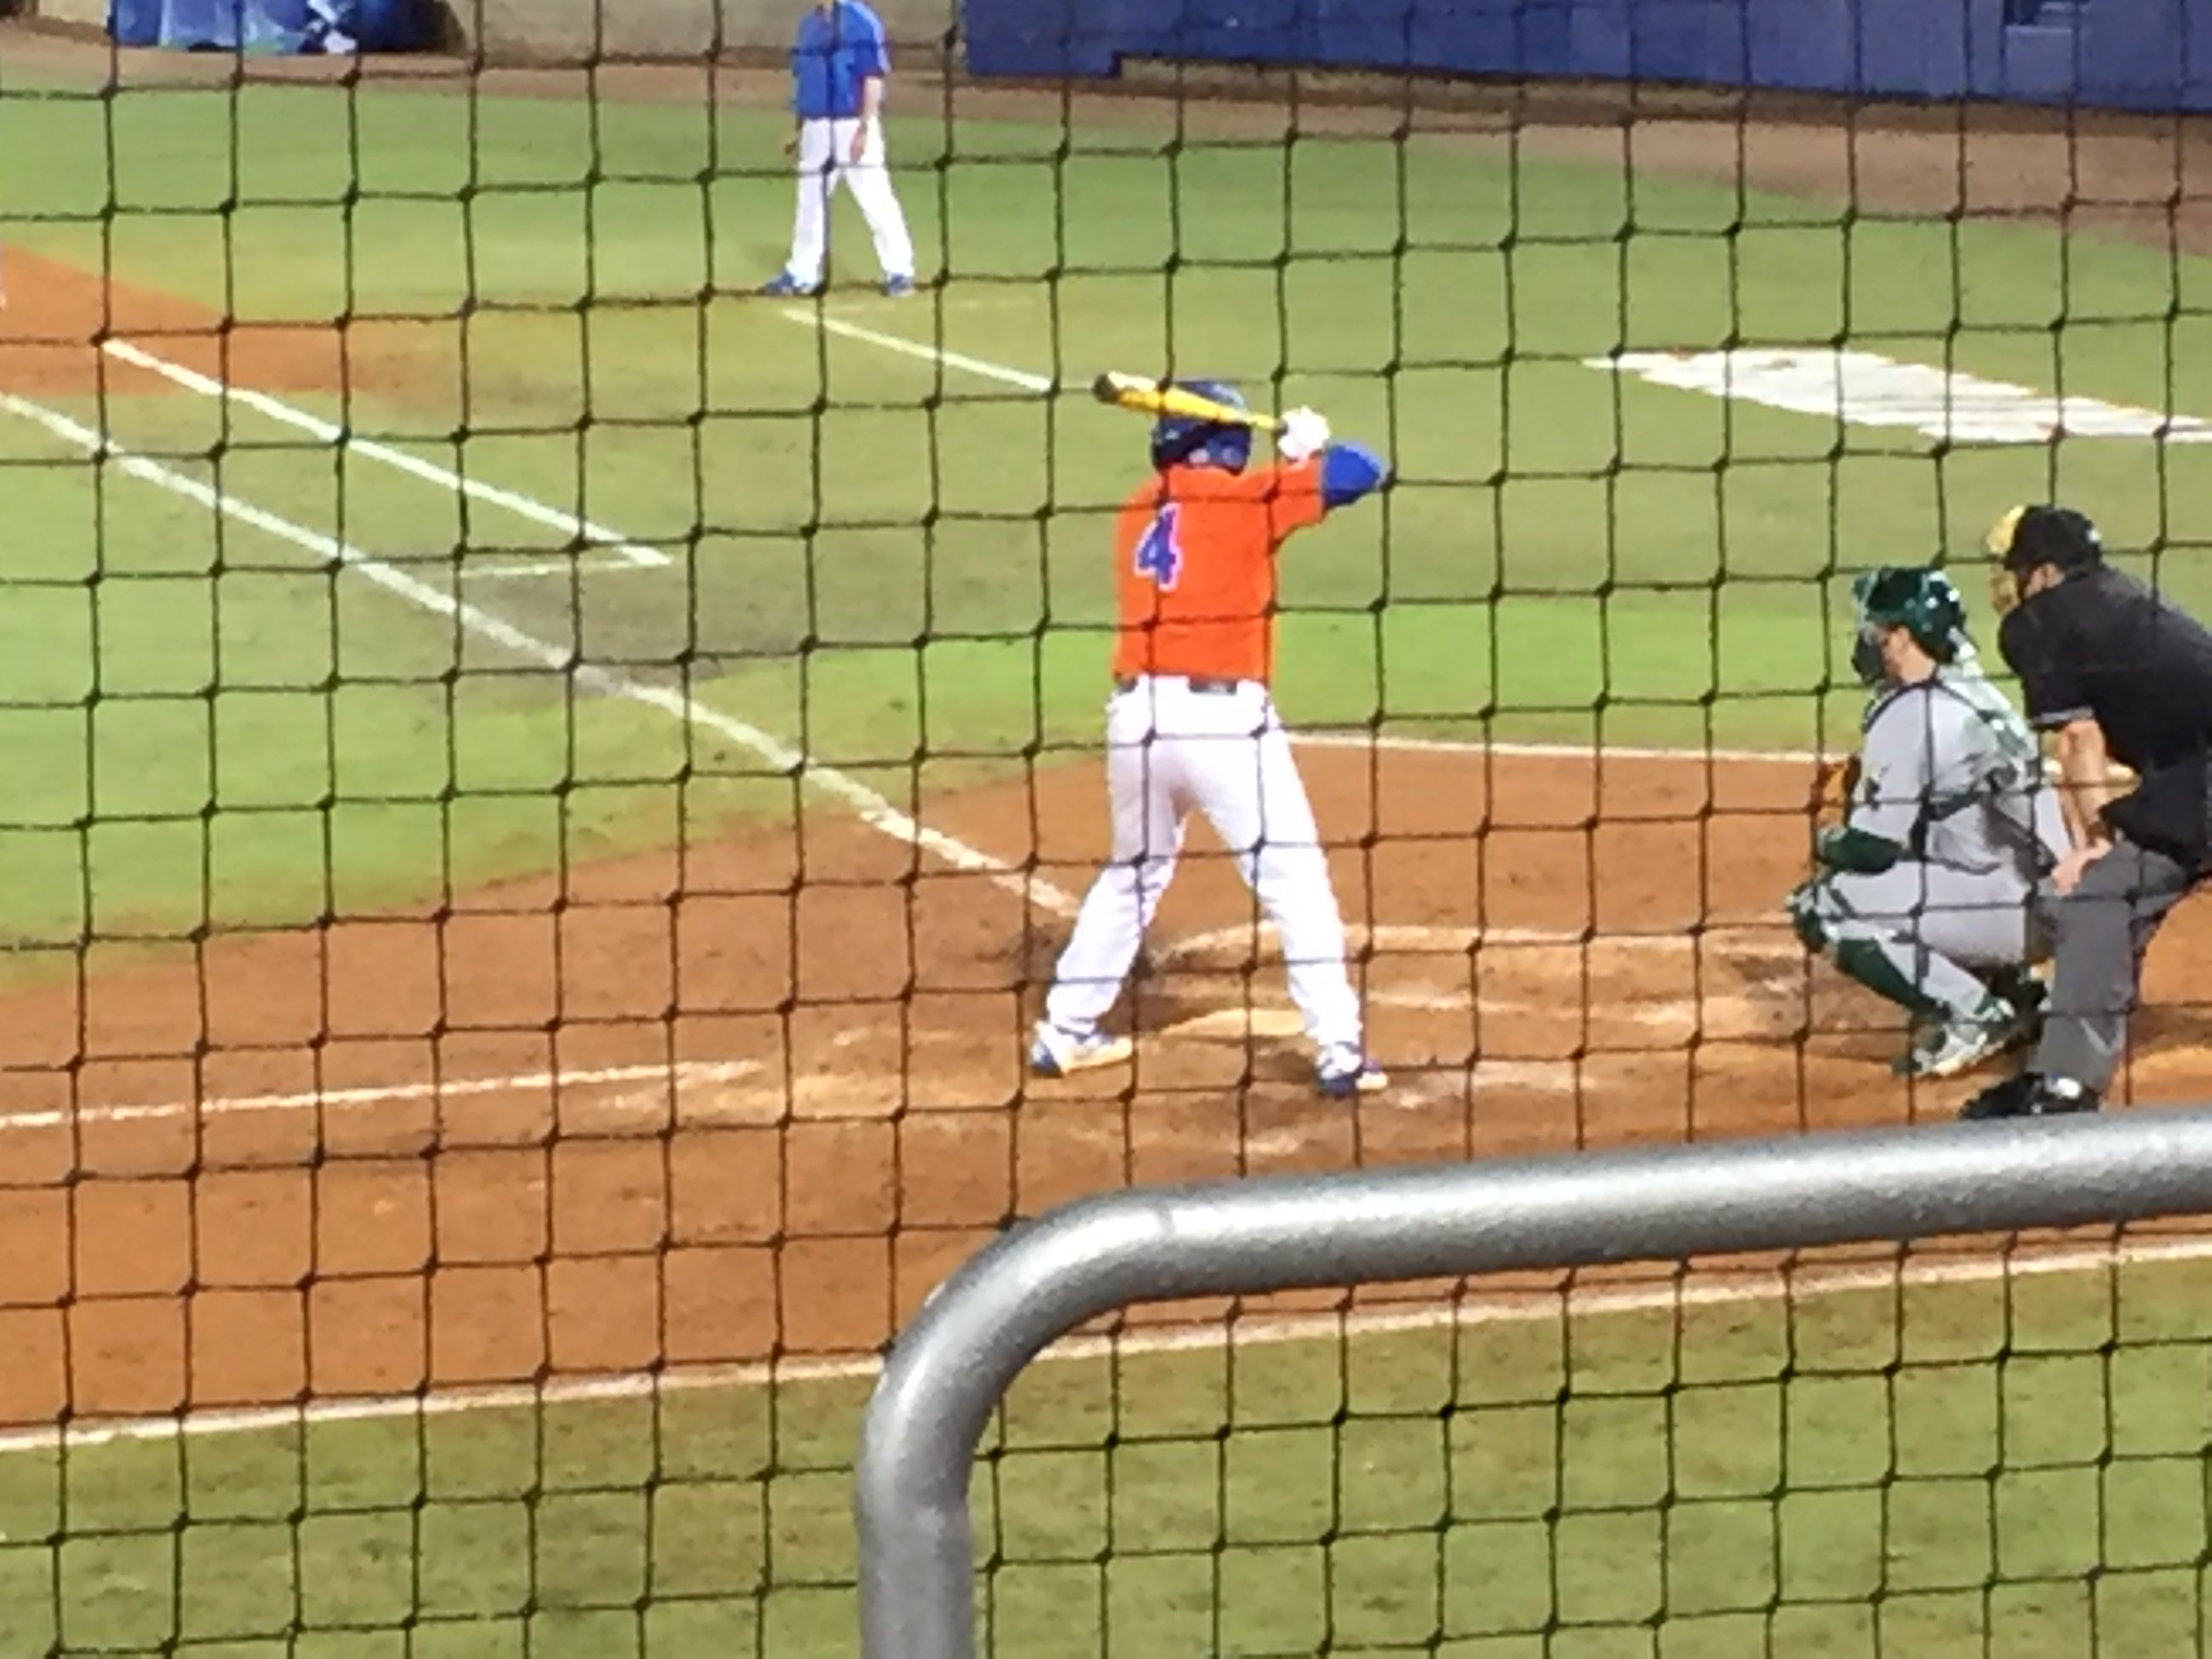 #1 Gators Shut Out Knights for Sweep